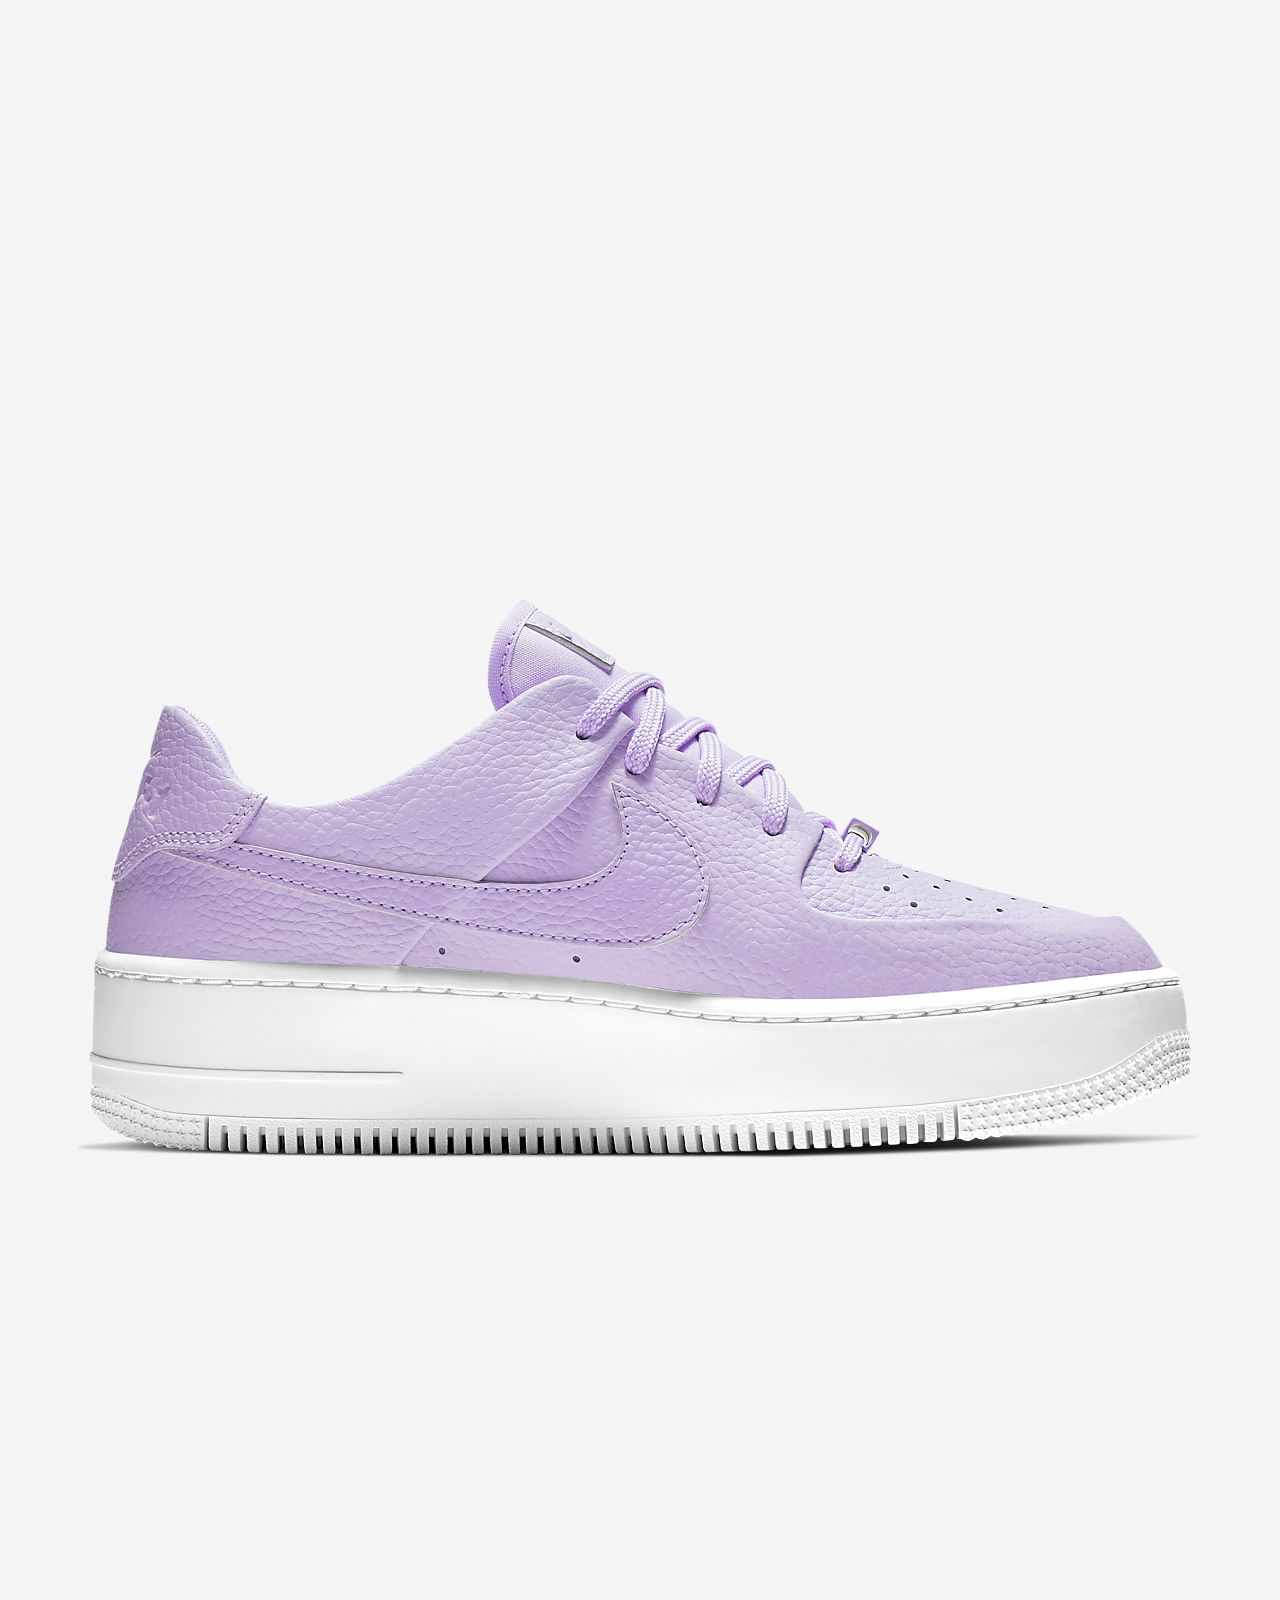 competitive price d9f60 19ea0 ... Nike Air Force 1 Sage Low Women s Shoe